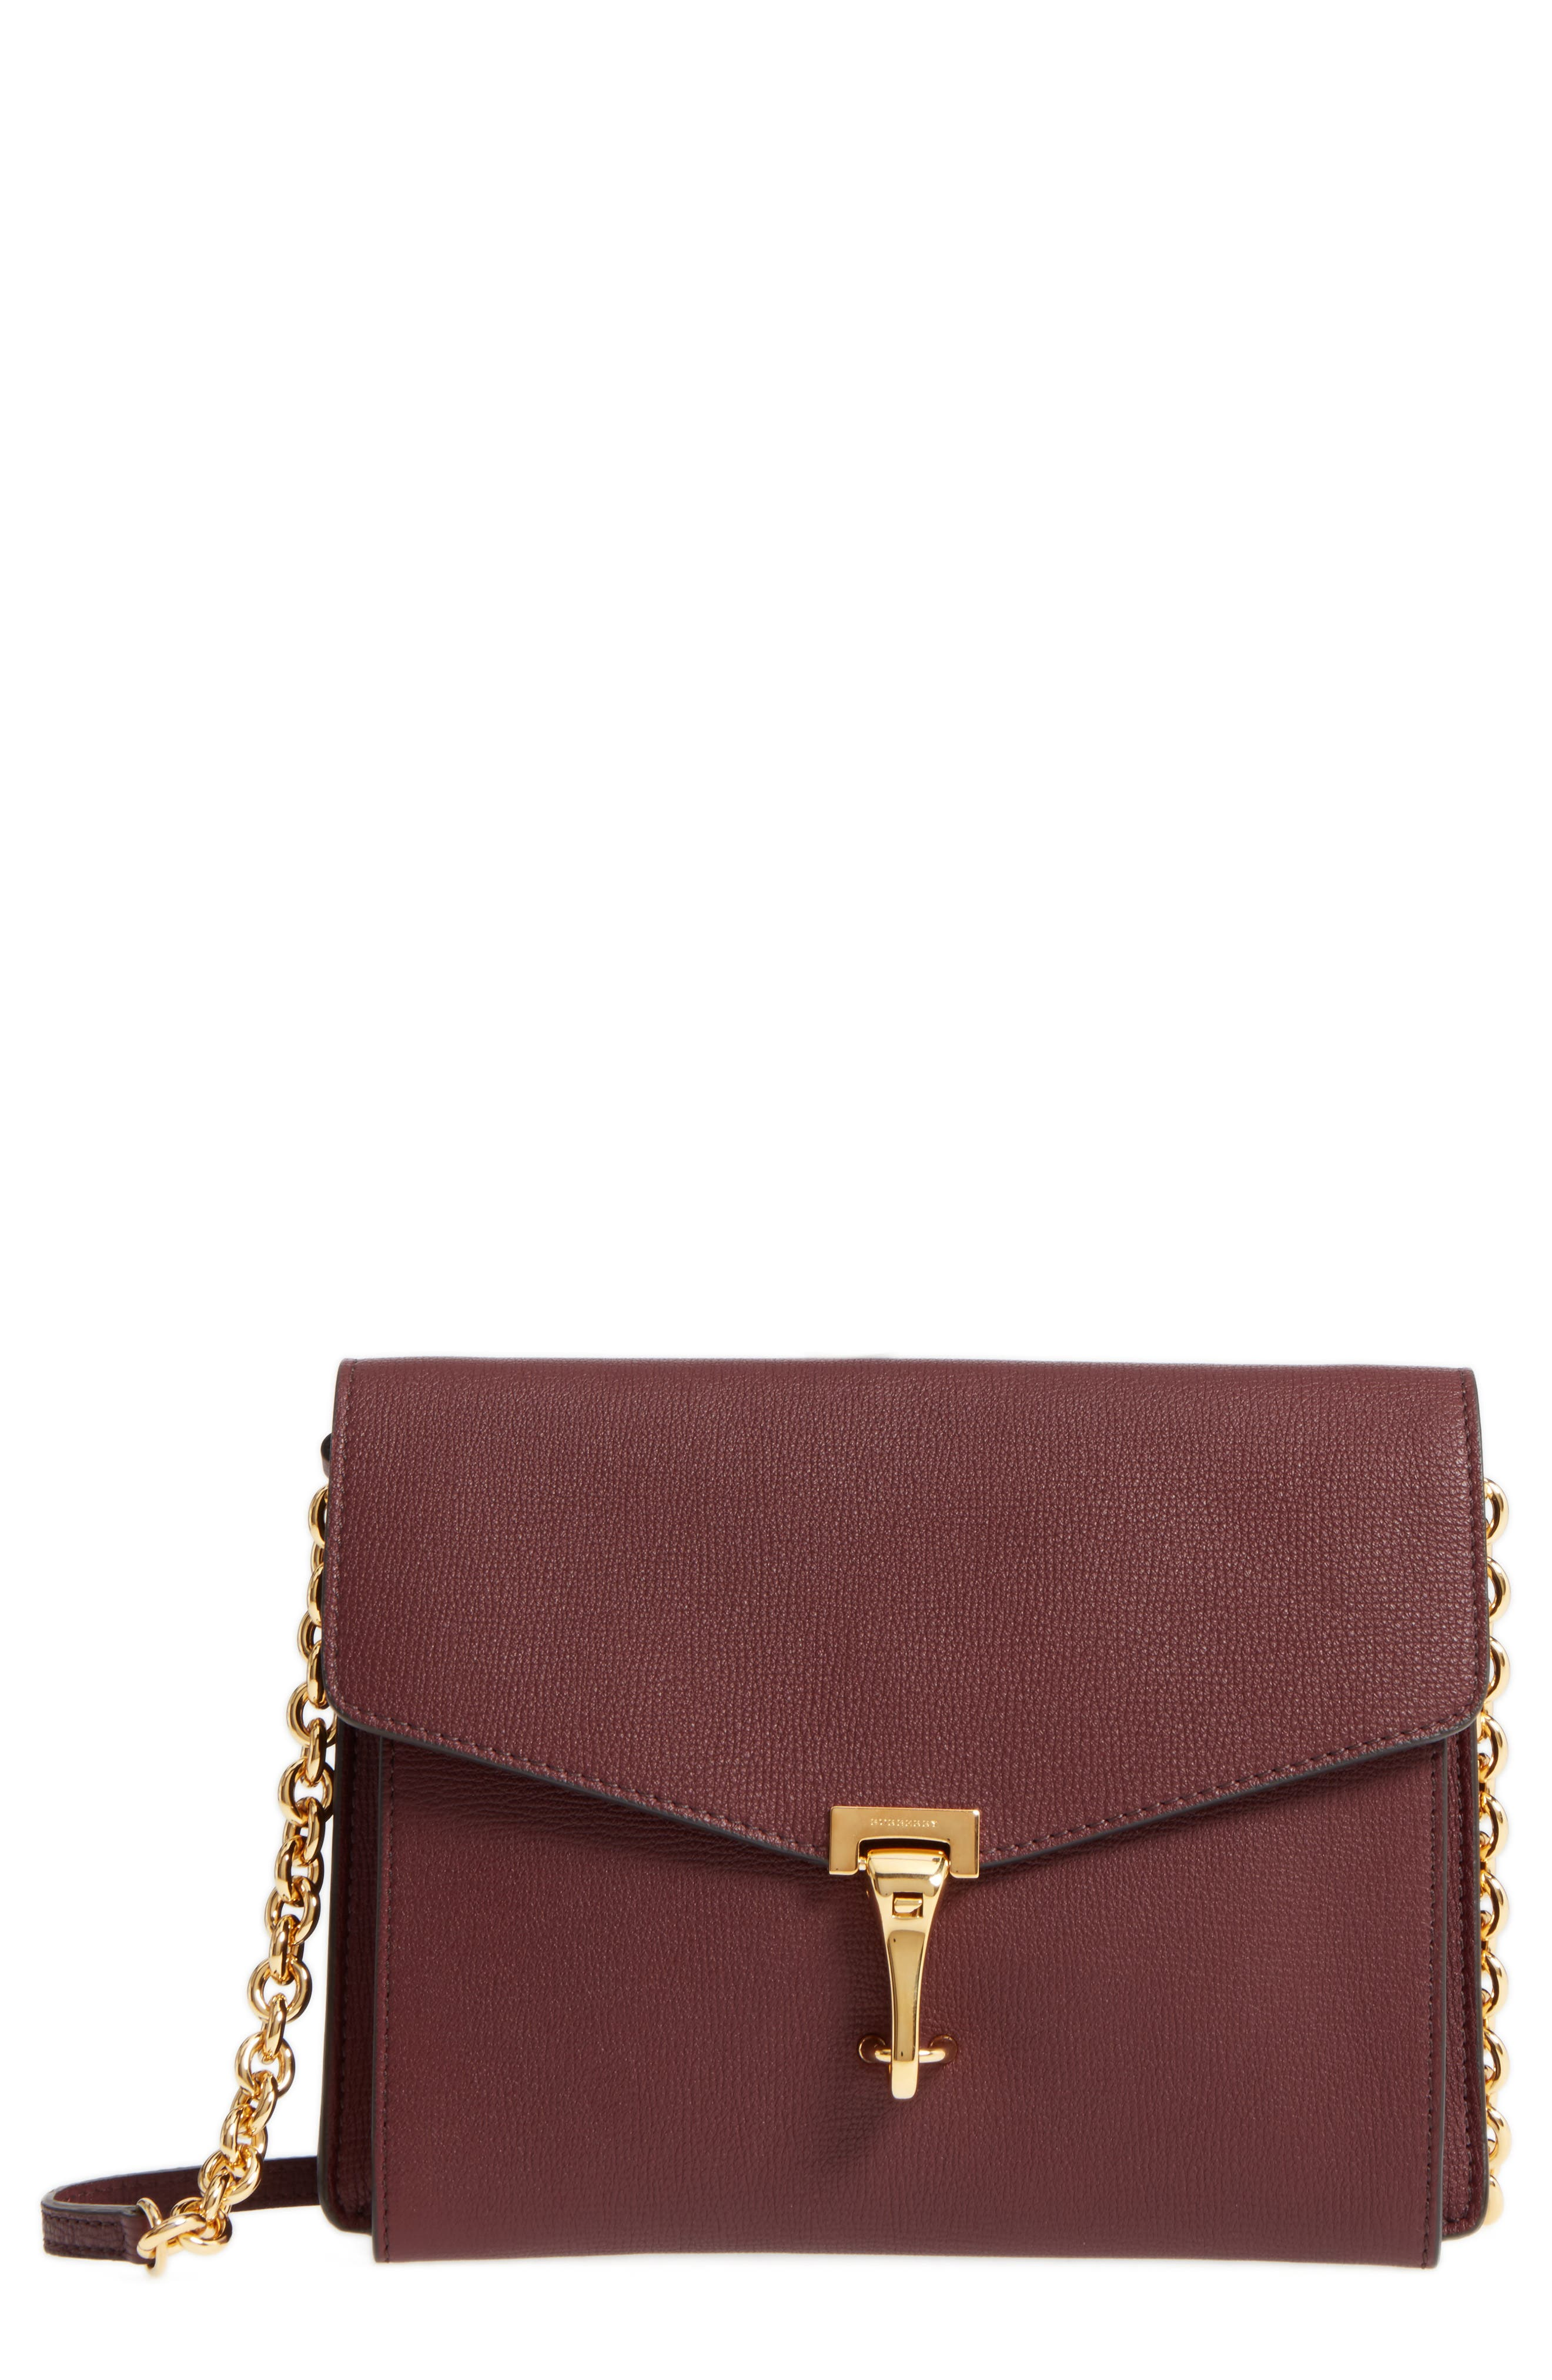 Alternate Image 1 Selected - Burberry Macken Leather Derby Crossbody Bag